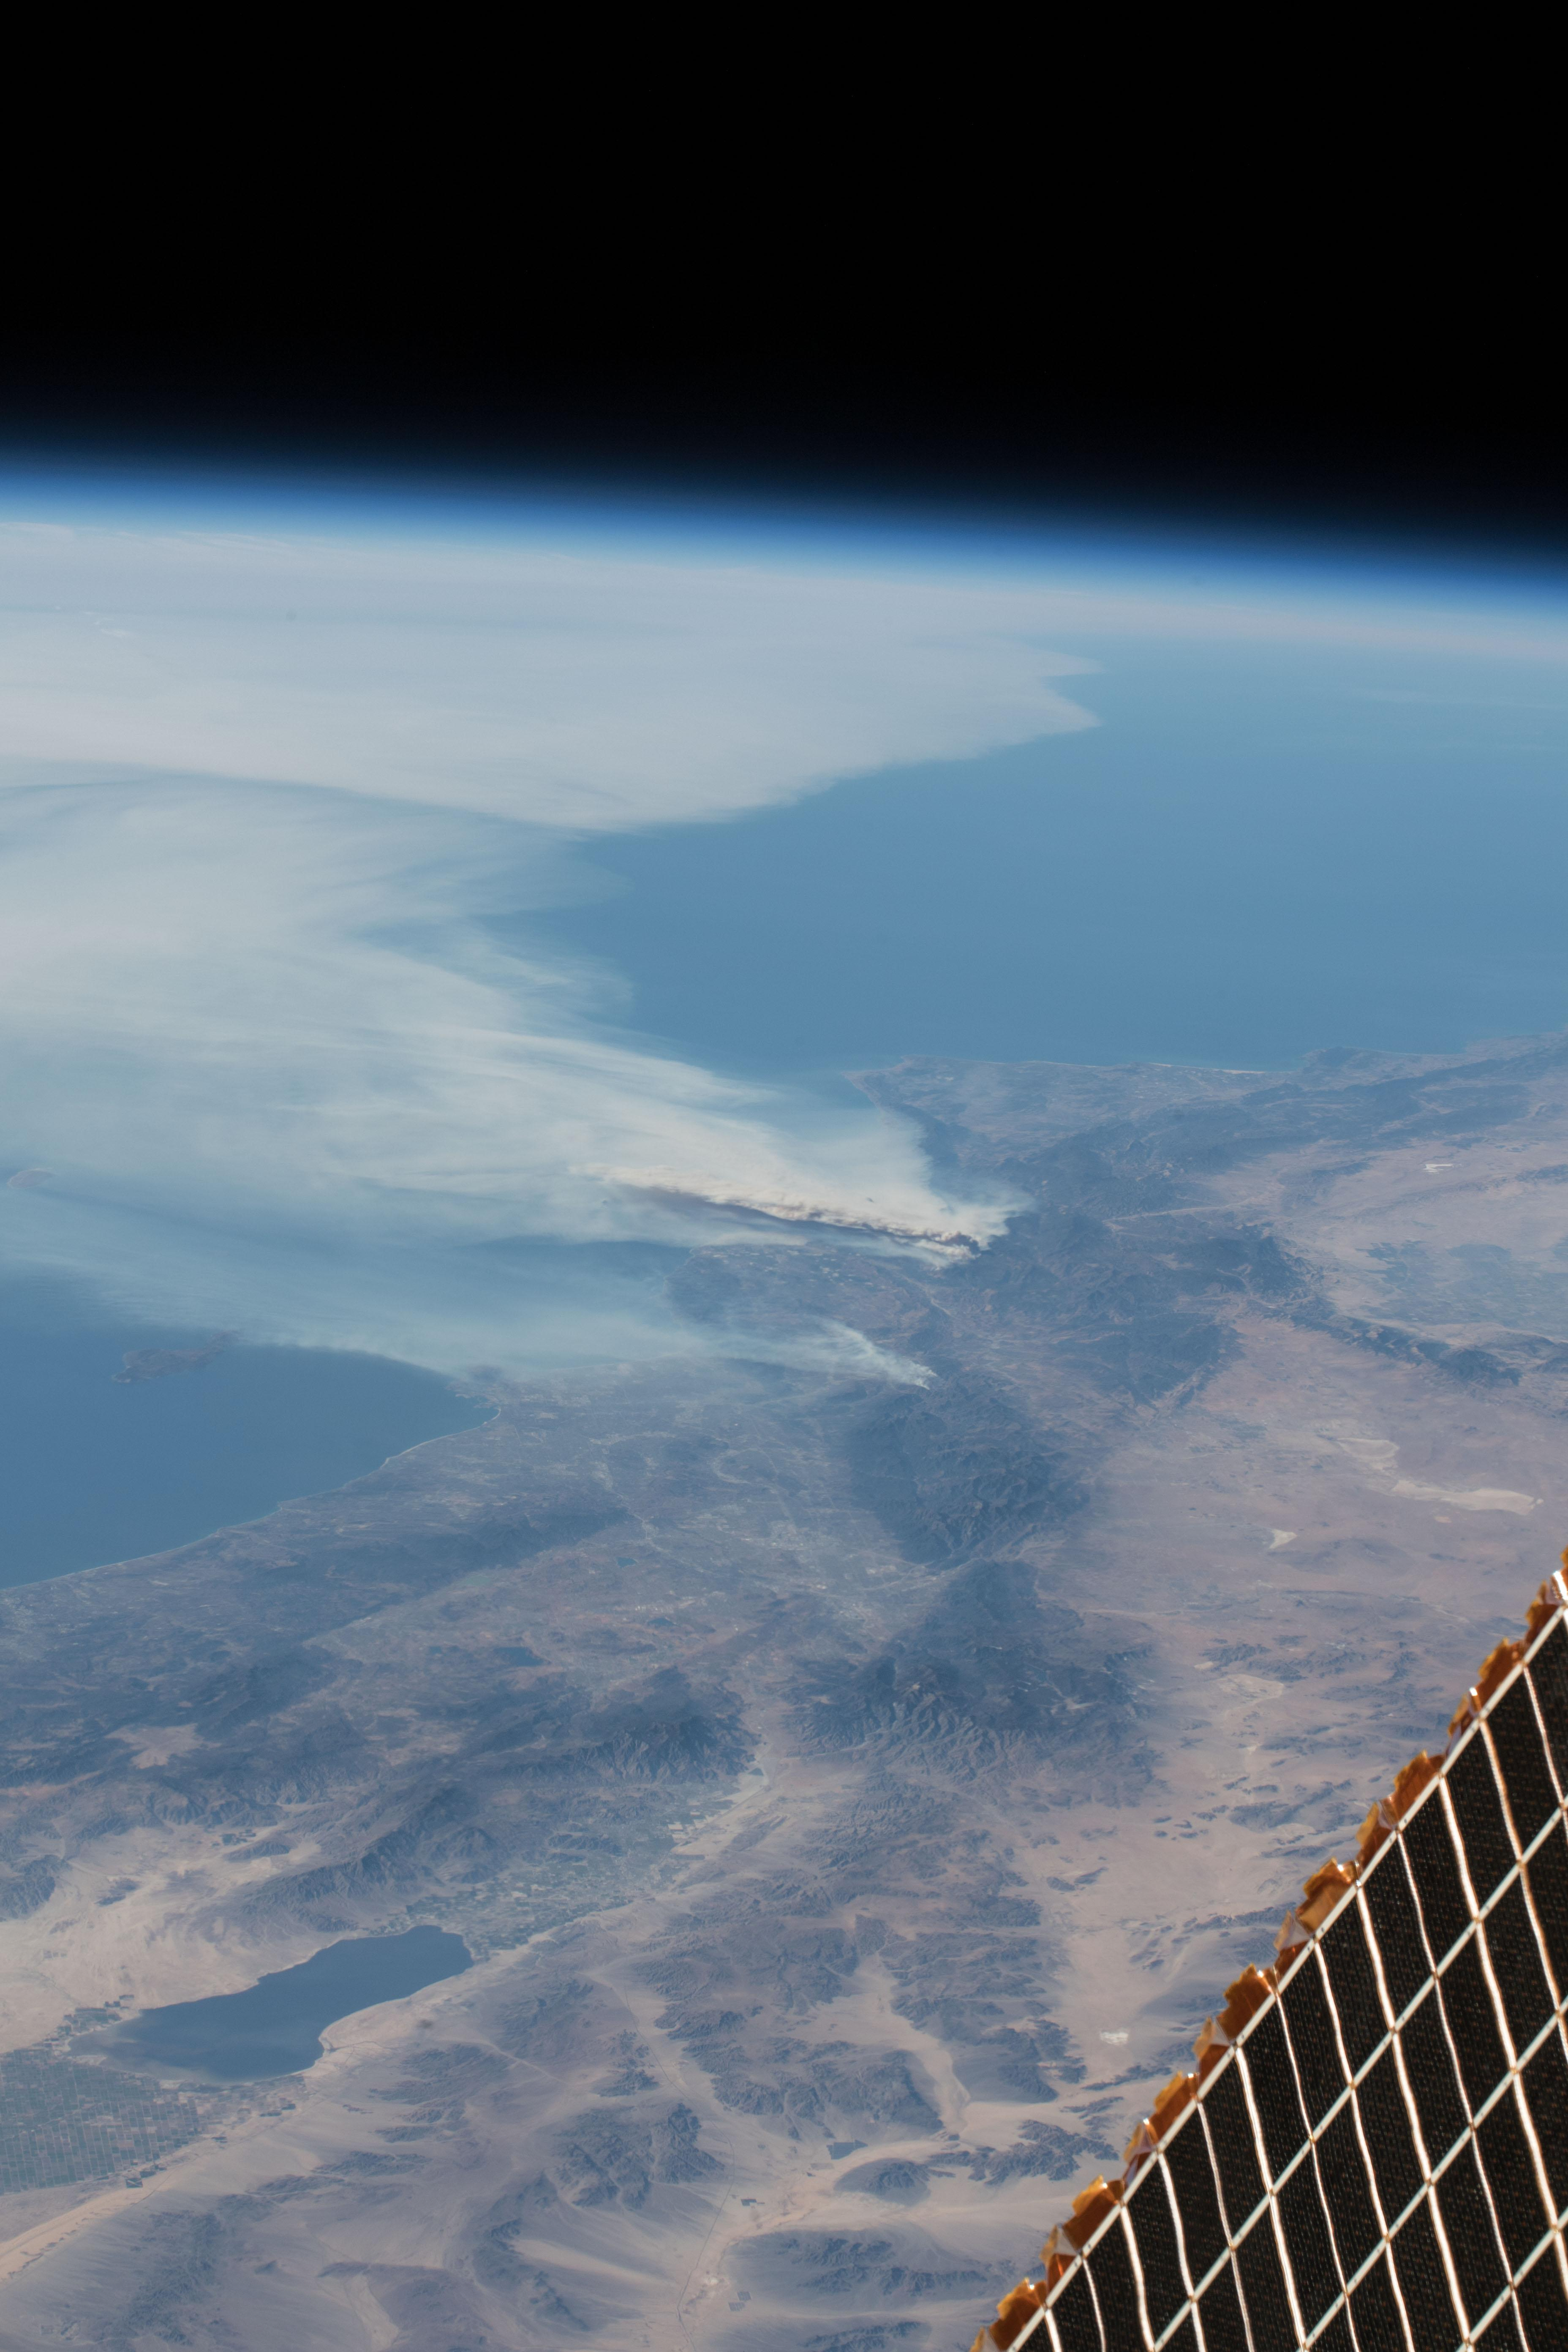 The crew aboard the station took some incredible photographs of the northern California wildfires over three days from their orbital perspective 250 miles above Earth's surface.{ } (CC BY-NC-ND 2.0)